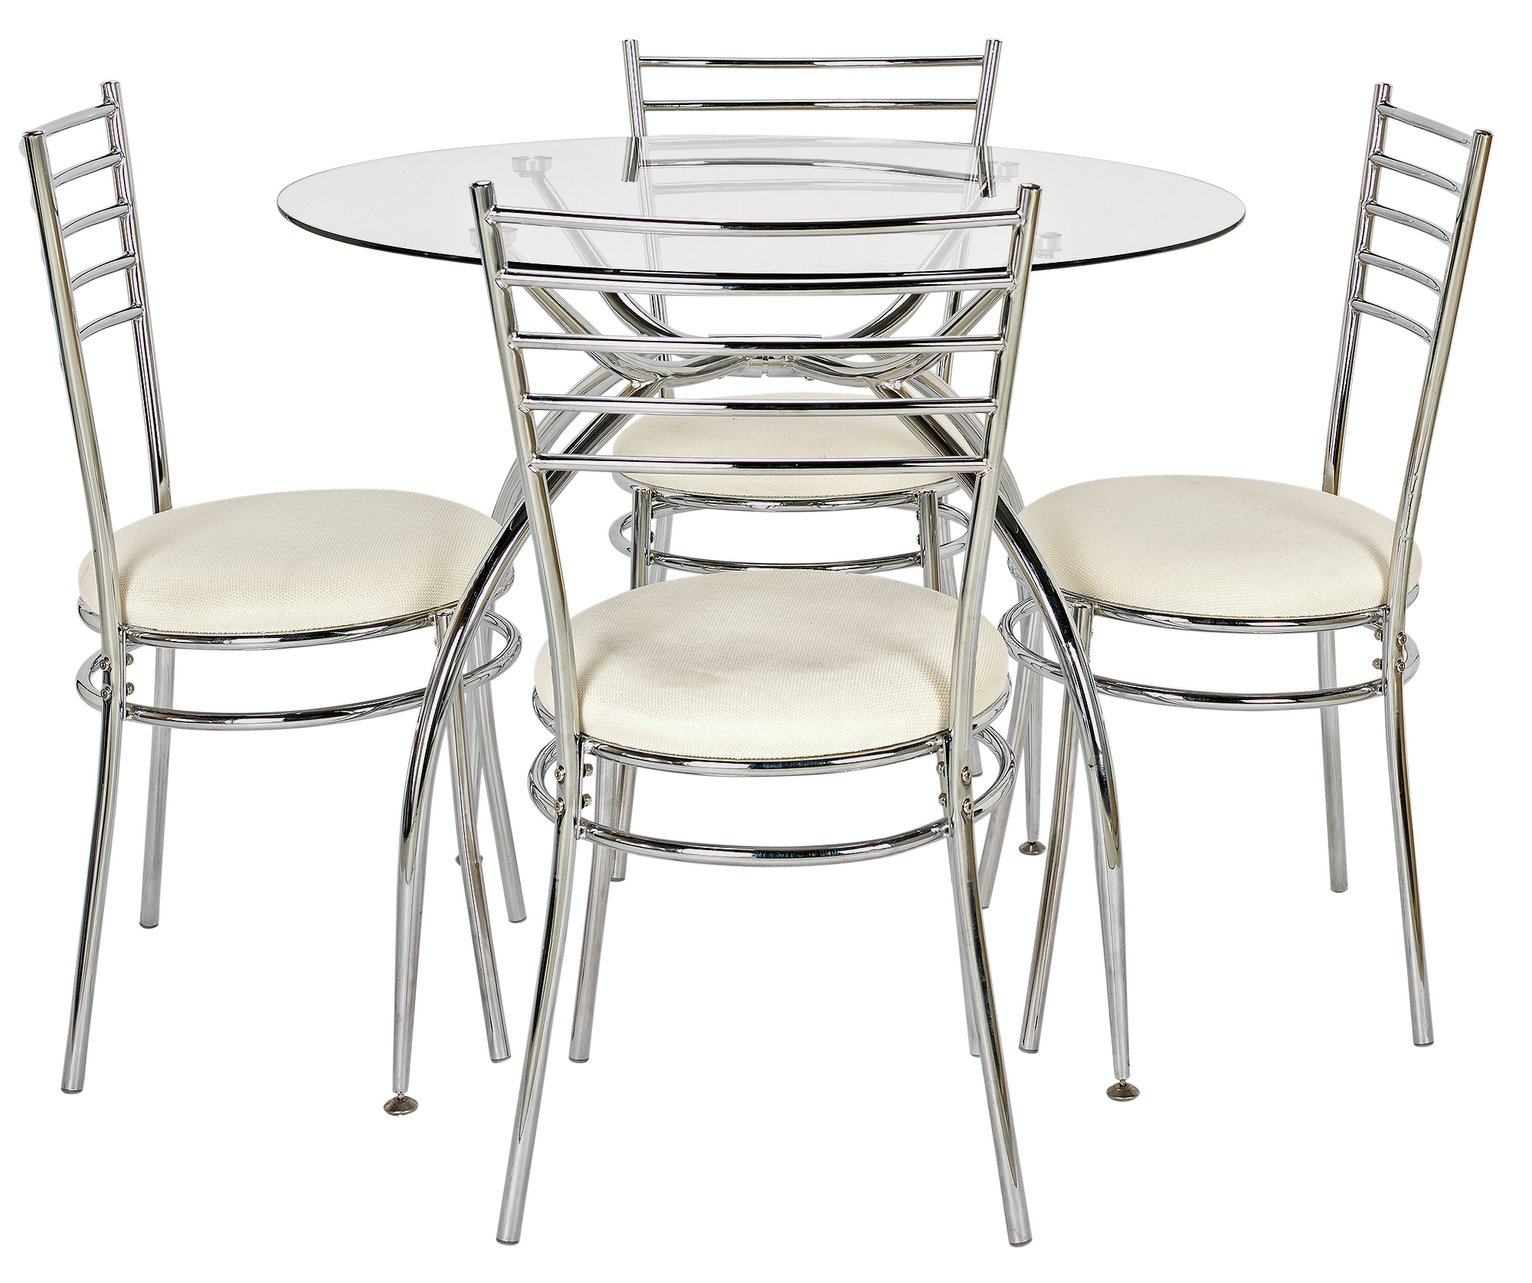 Image of HOME Lusi Glass Dining Table and 4 Chairs - White